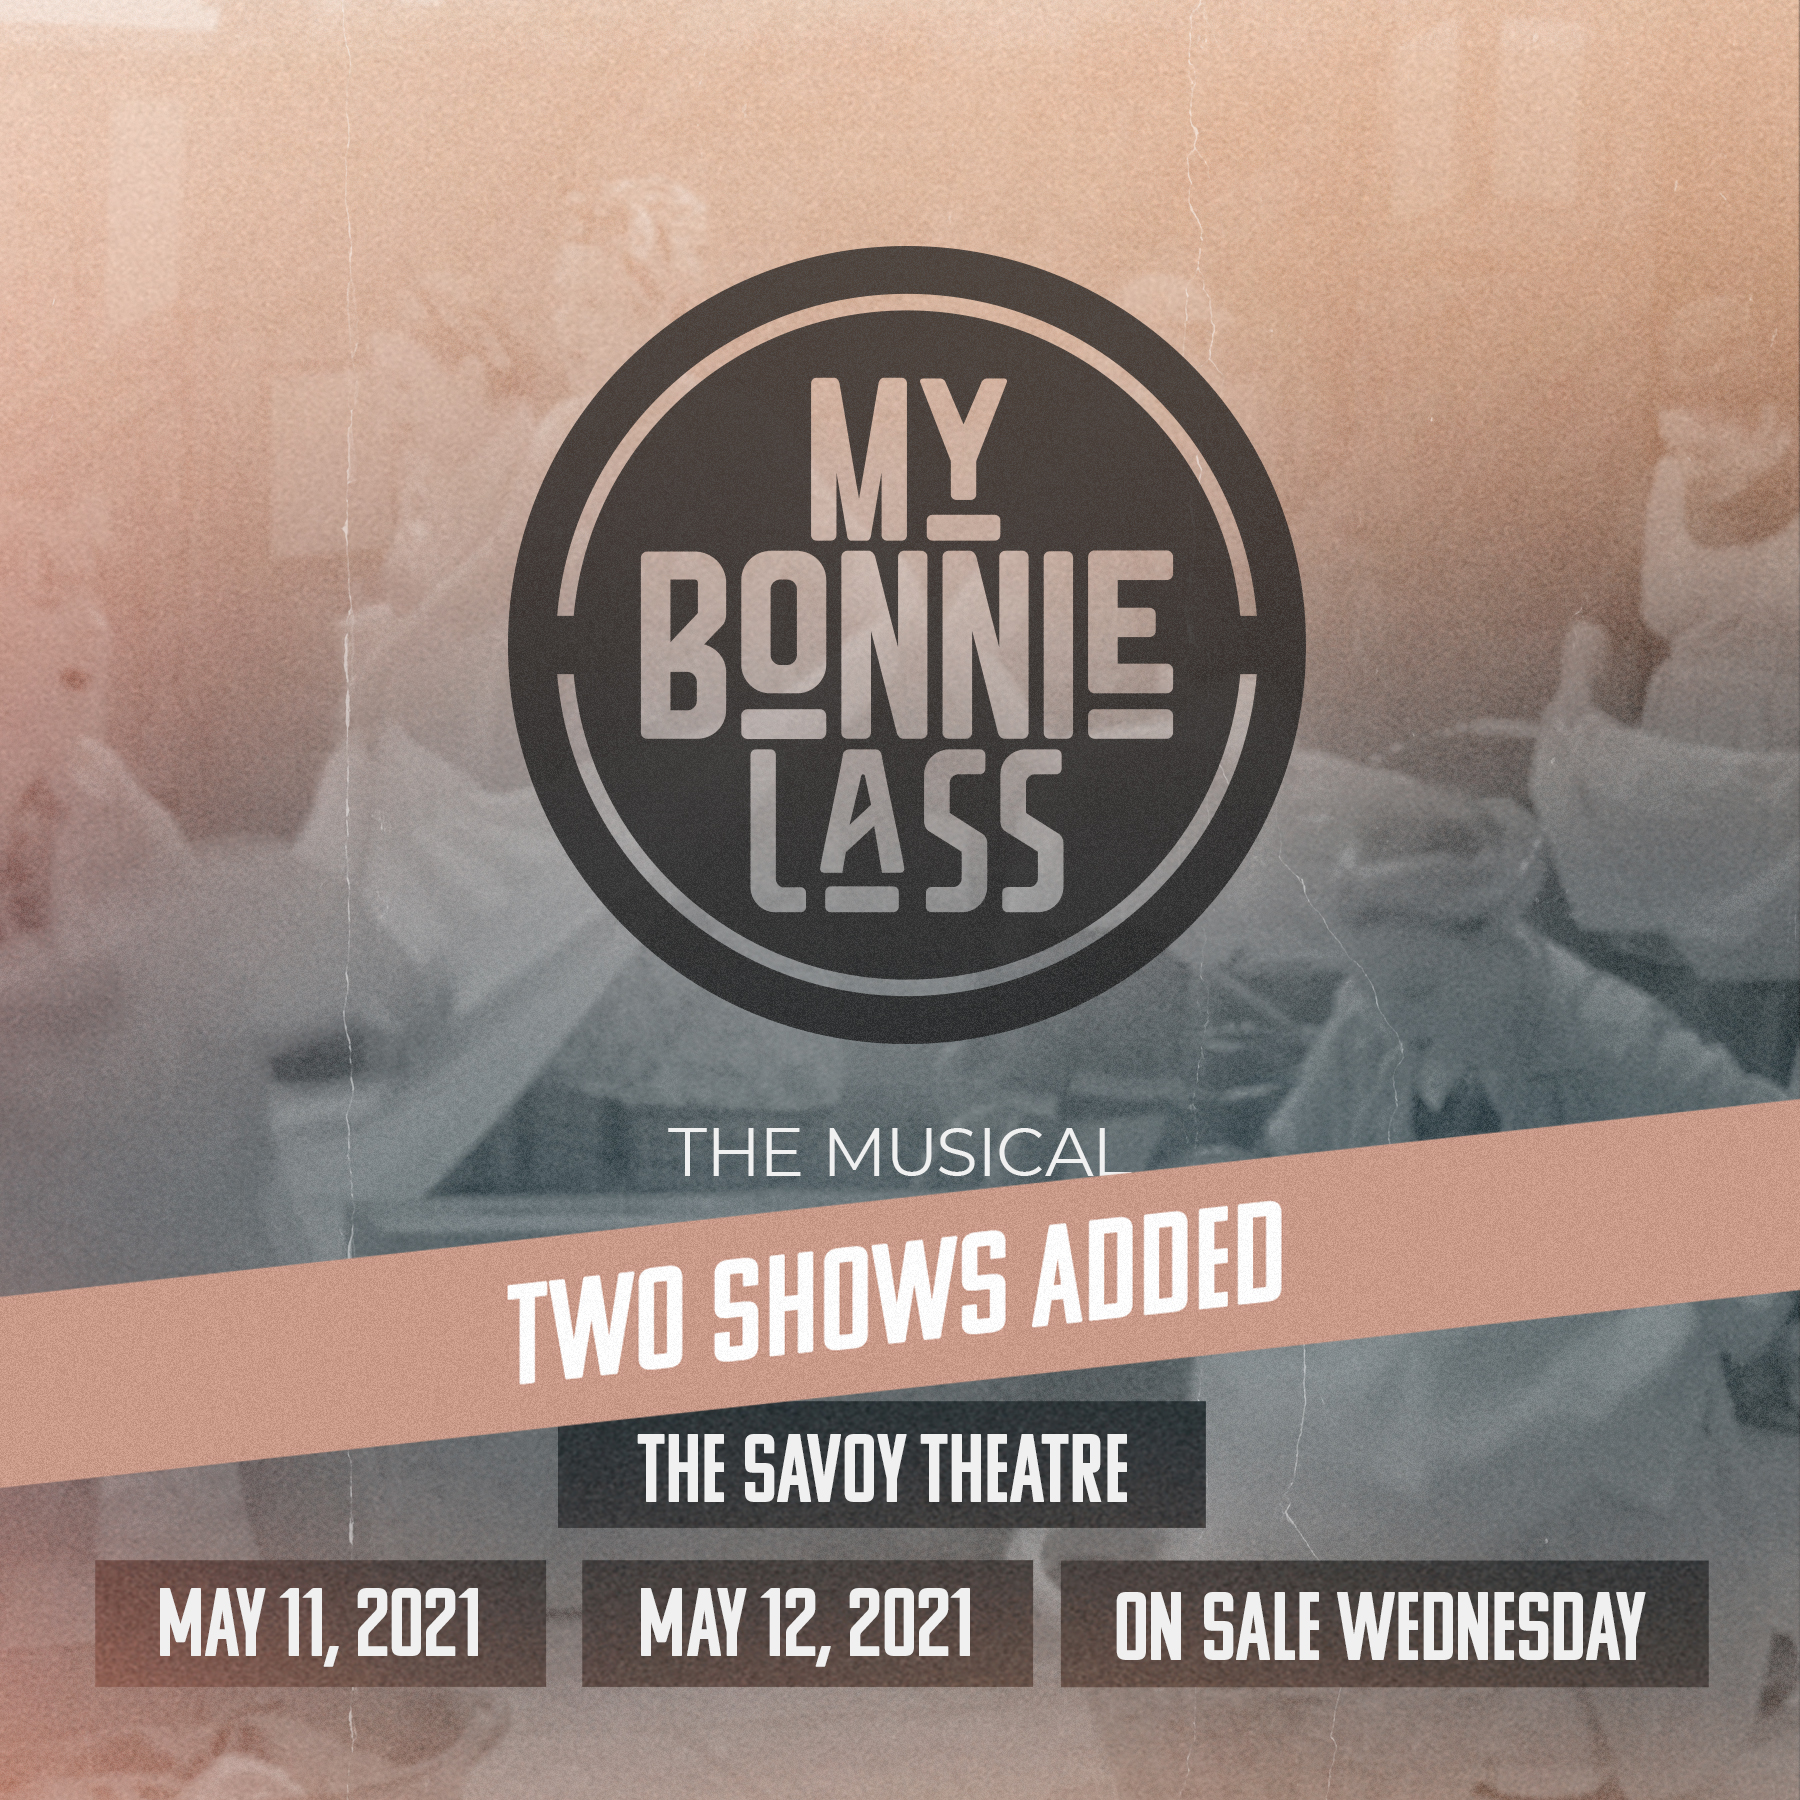 Two More MY BONNIE LASS Shows Added